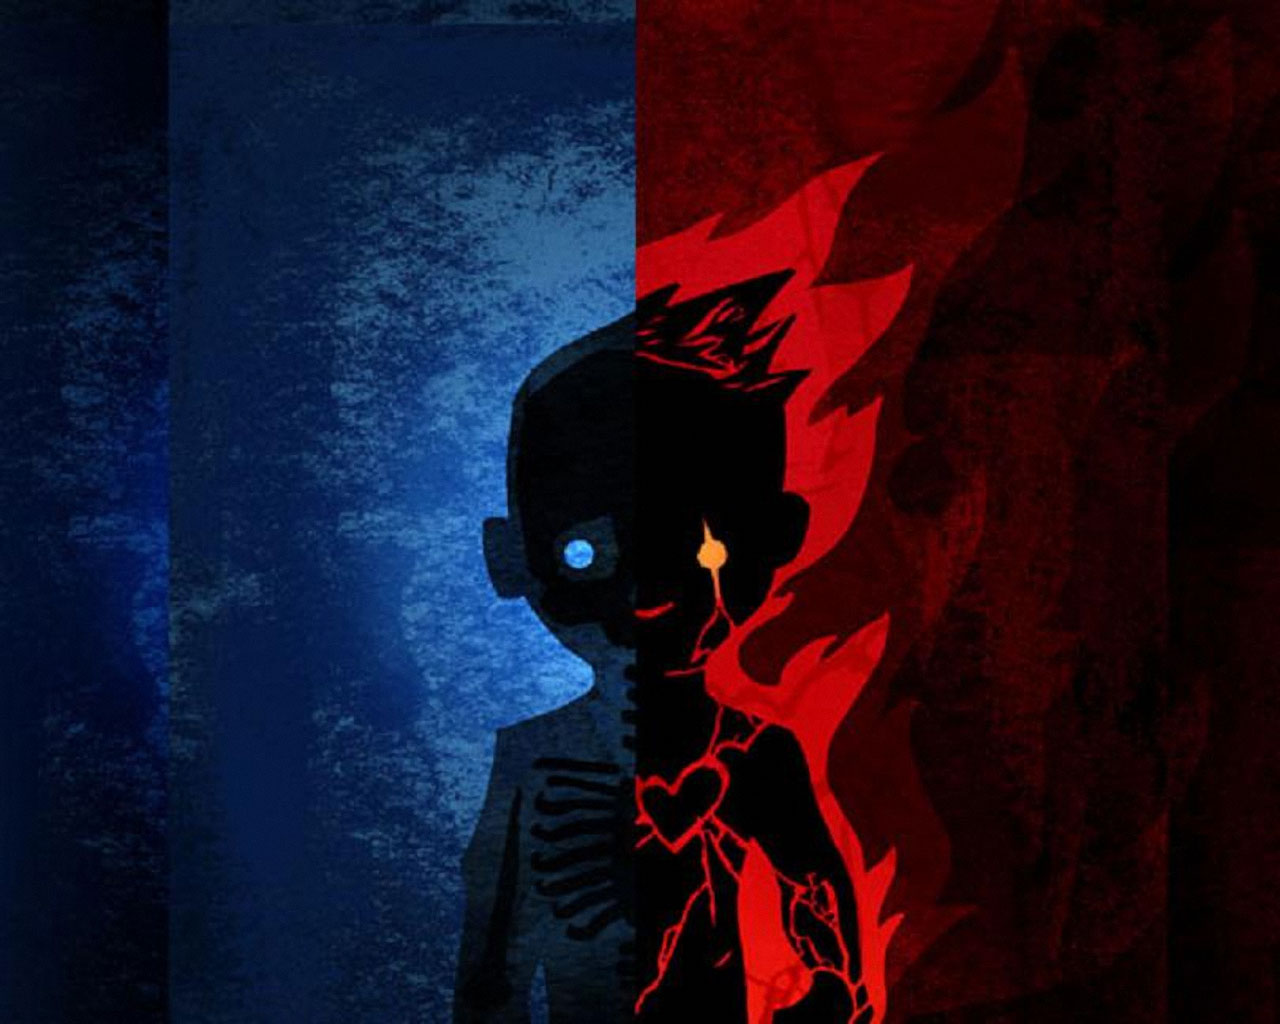 Hd Wallpapers Red Blue Boy